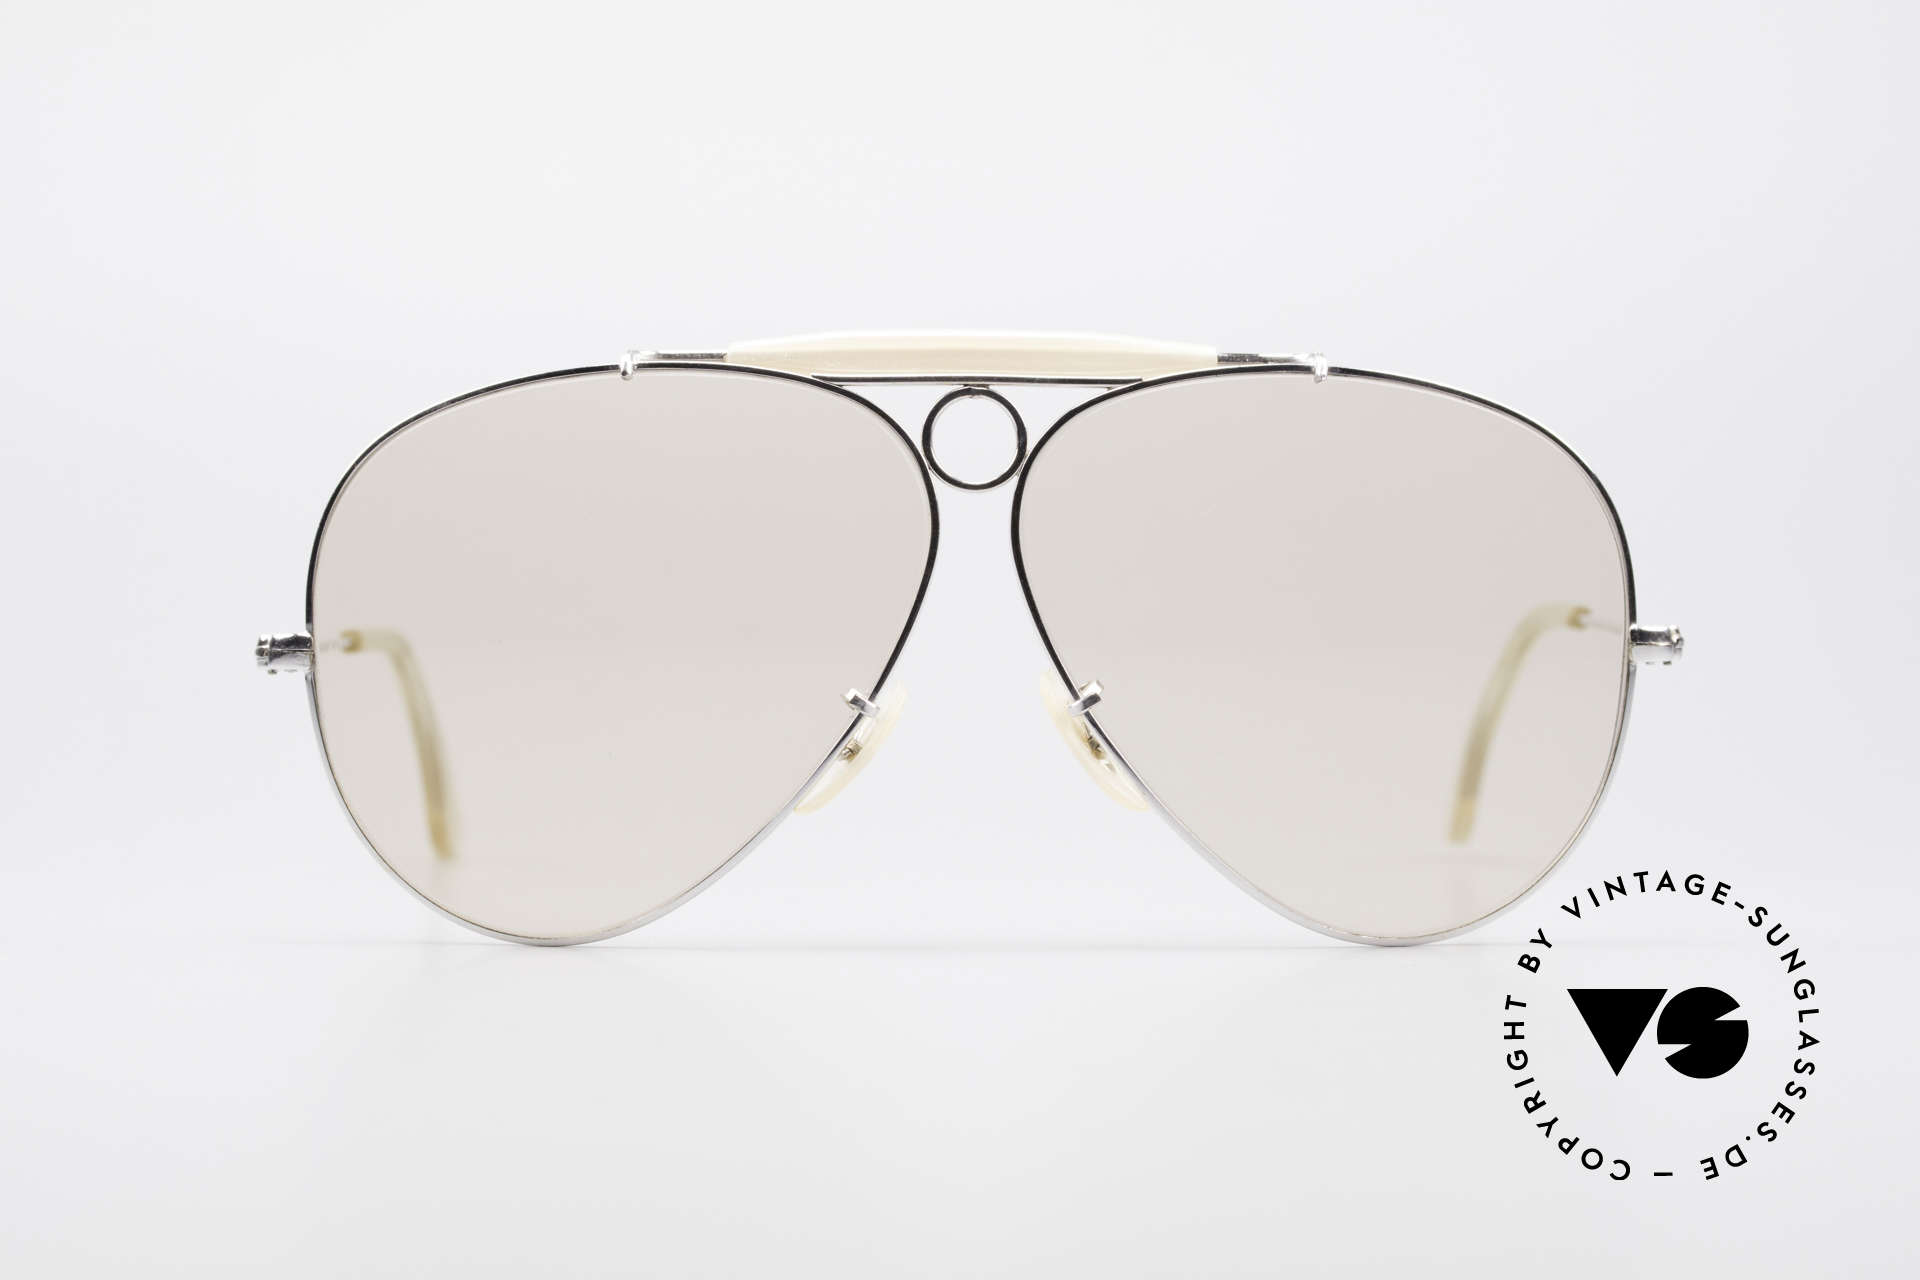 19ee36f67bf Sunglasses Ray Ban Shooter Gold Filled   Changeable Lens